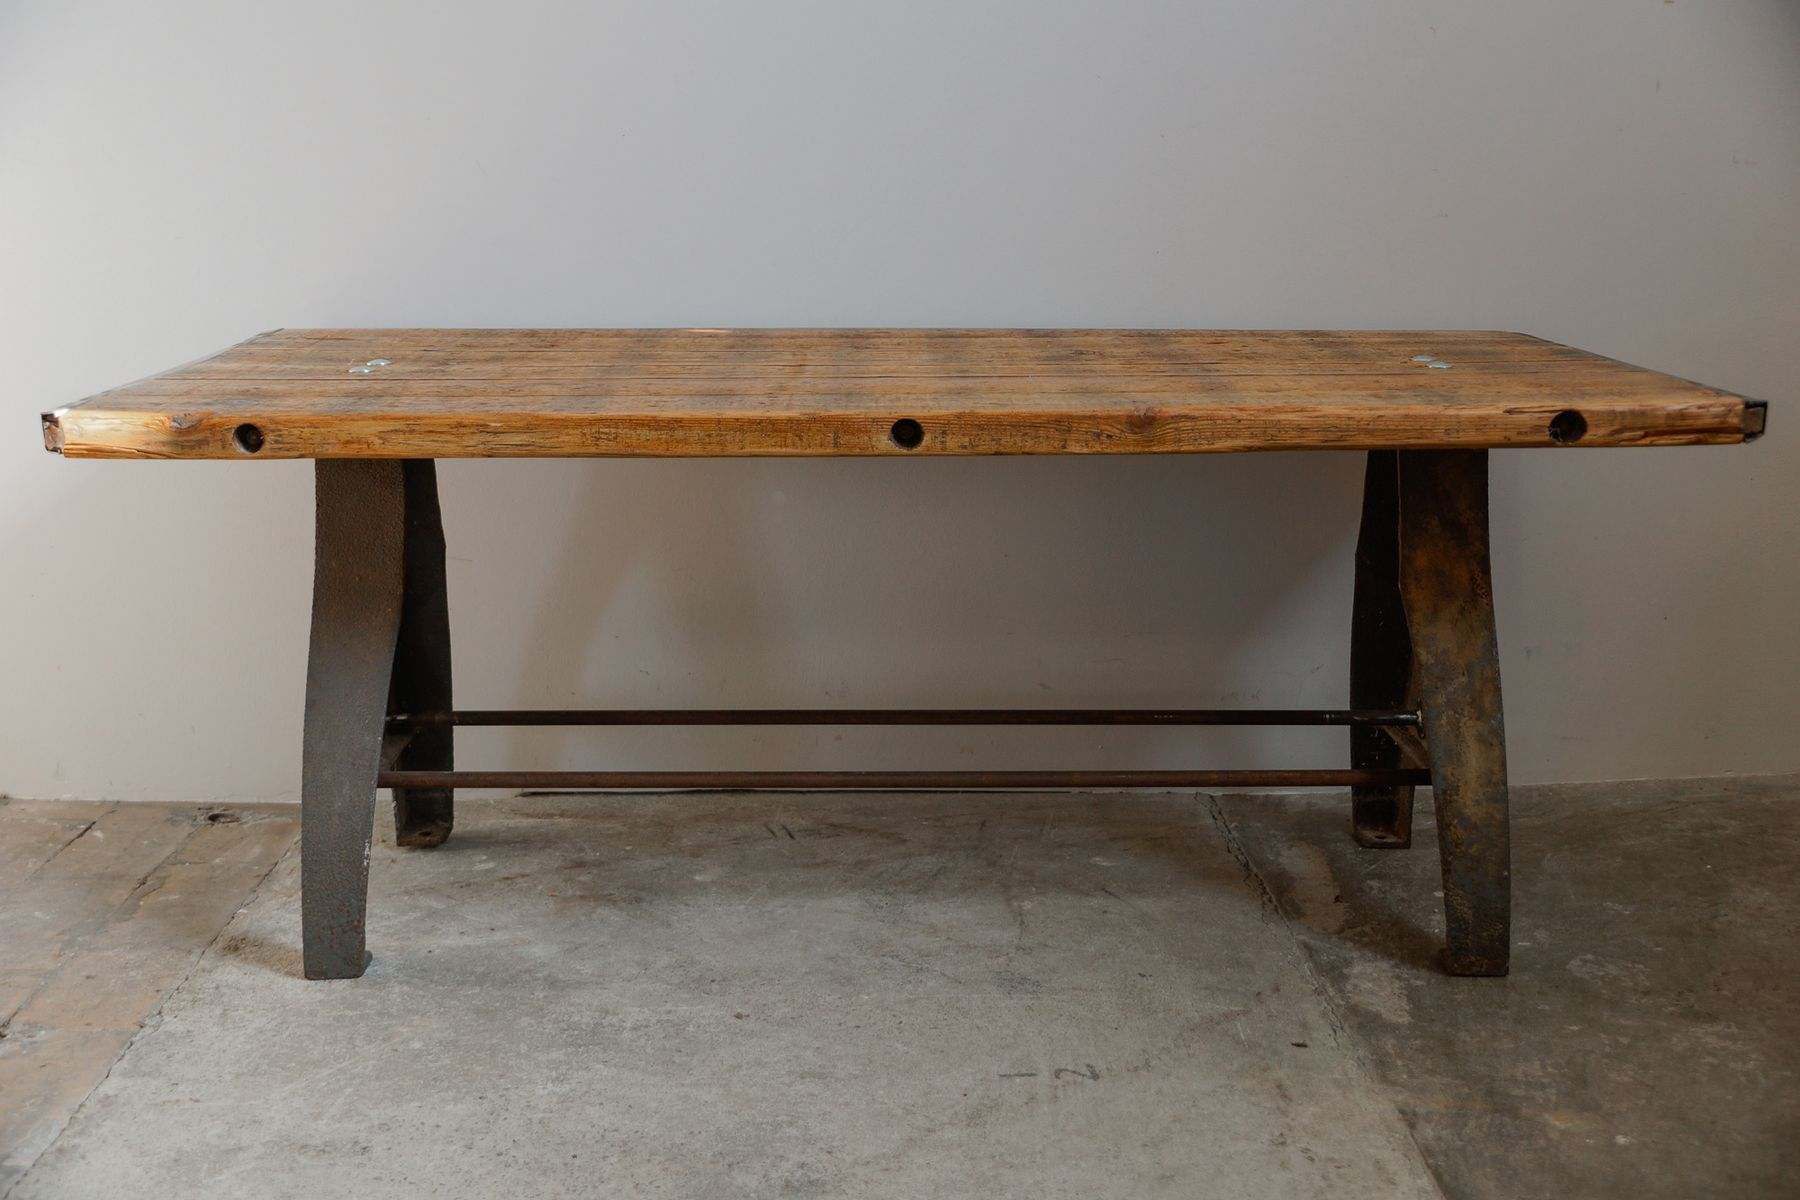 Vintage Industrial Machine Coffee Table For Sale At Pamono